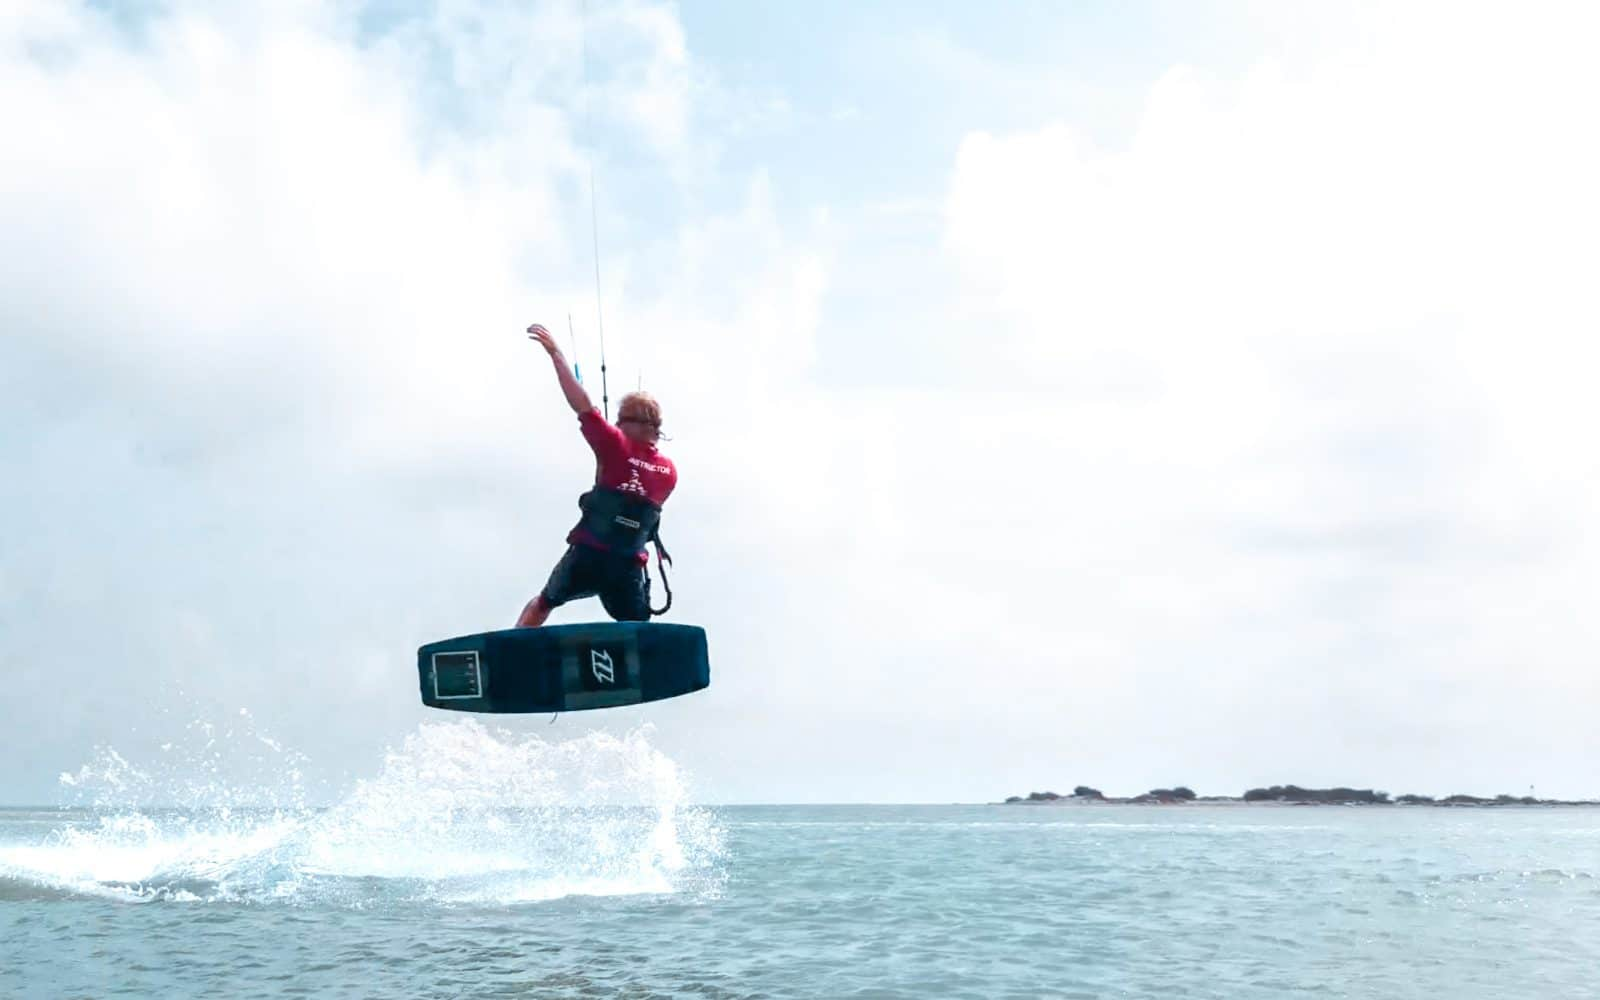 Inverted front roll - a step by step guide to mastering this kitesurfing trick 4